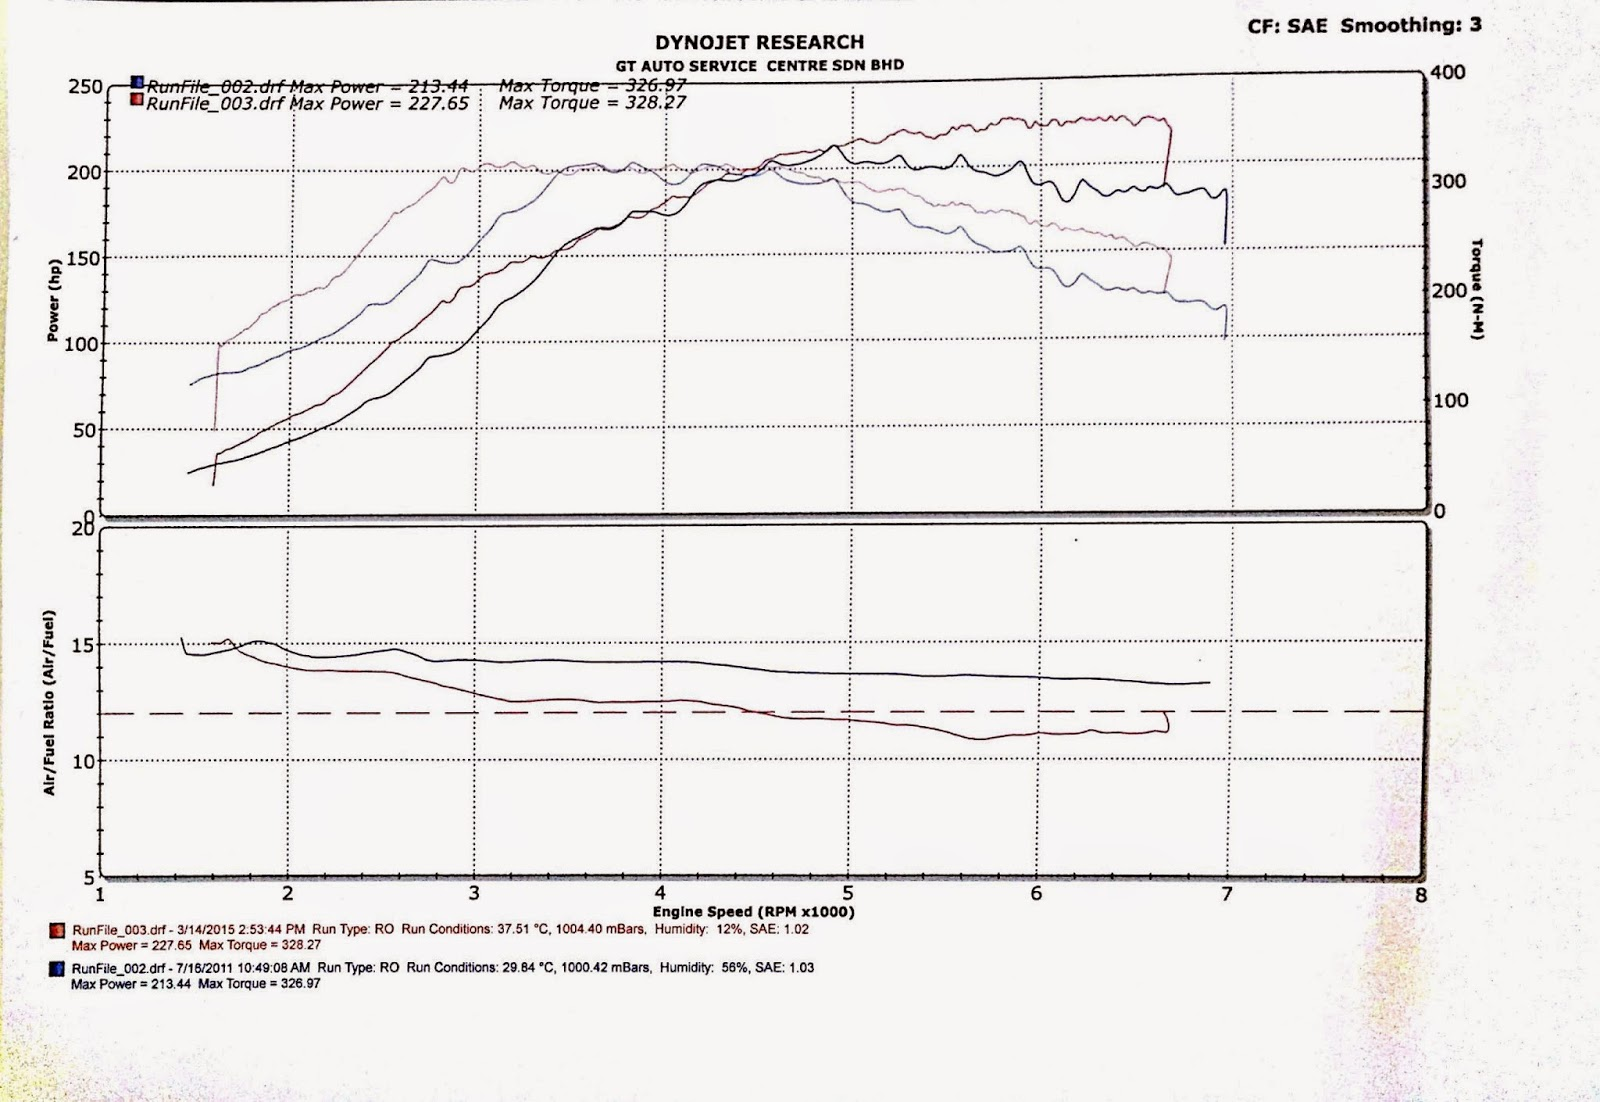 Motoring Malaysia Guest Post Owners Review 2010 Volkswagen Golf Wiring Diagram Rev Limiter Vw Gti Dyno Charts Of Both Polo When It Was Running Dangerously Lean And 6r